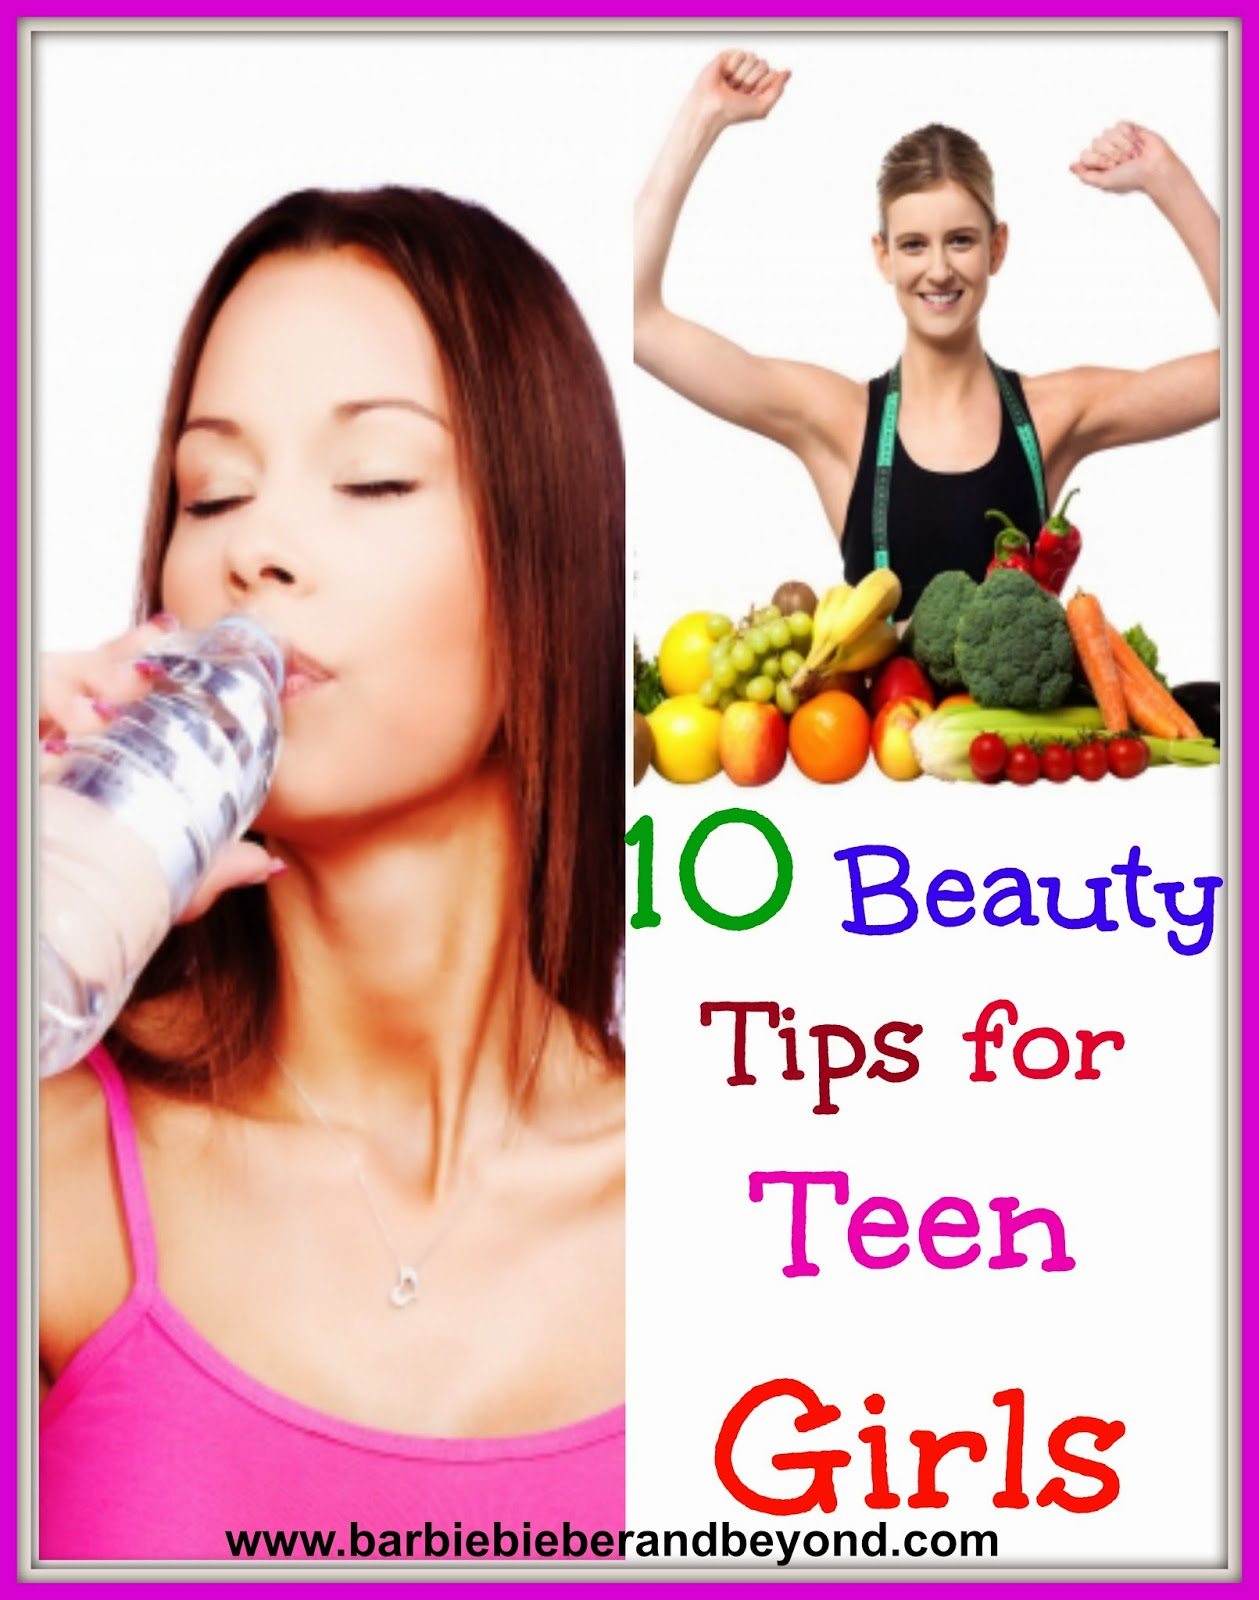 10 Beauty Tips for Teen Girls - Barbie Bieber and Beyond